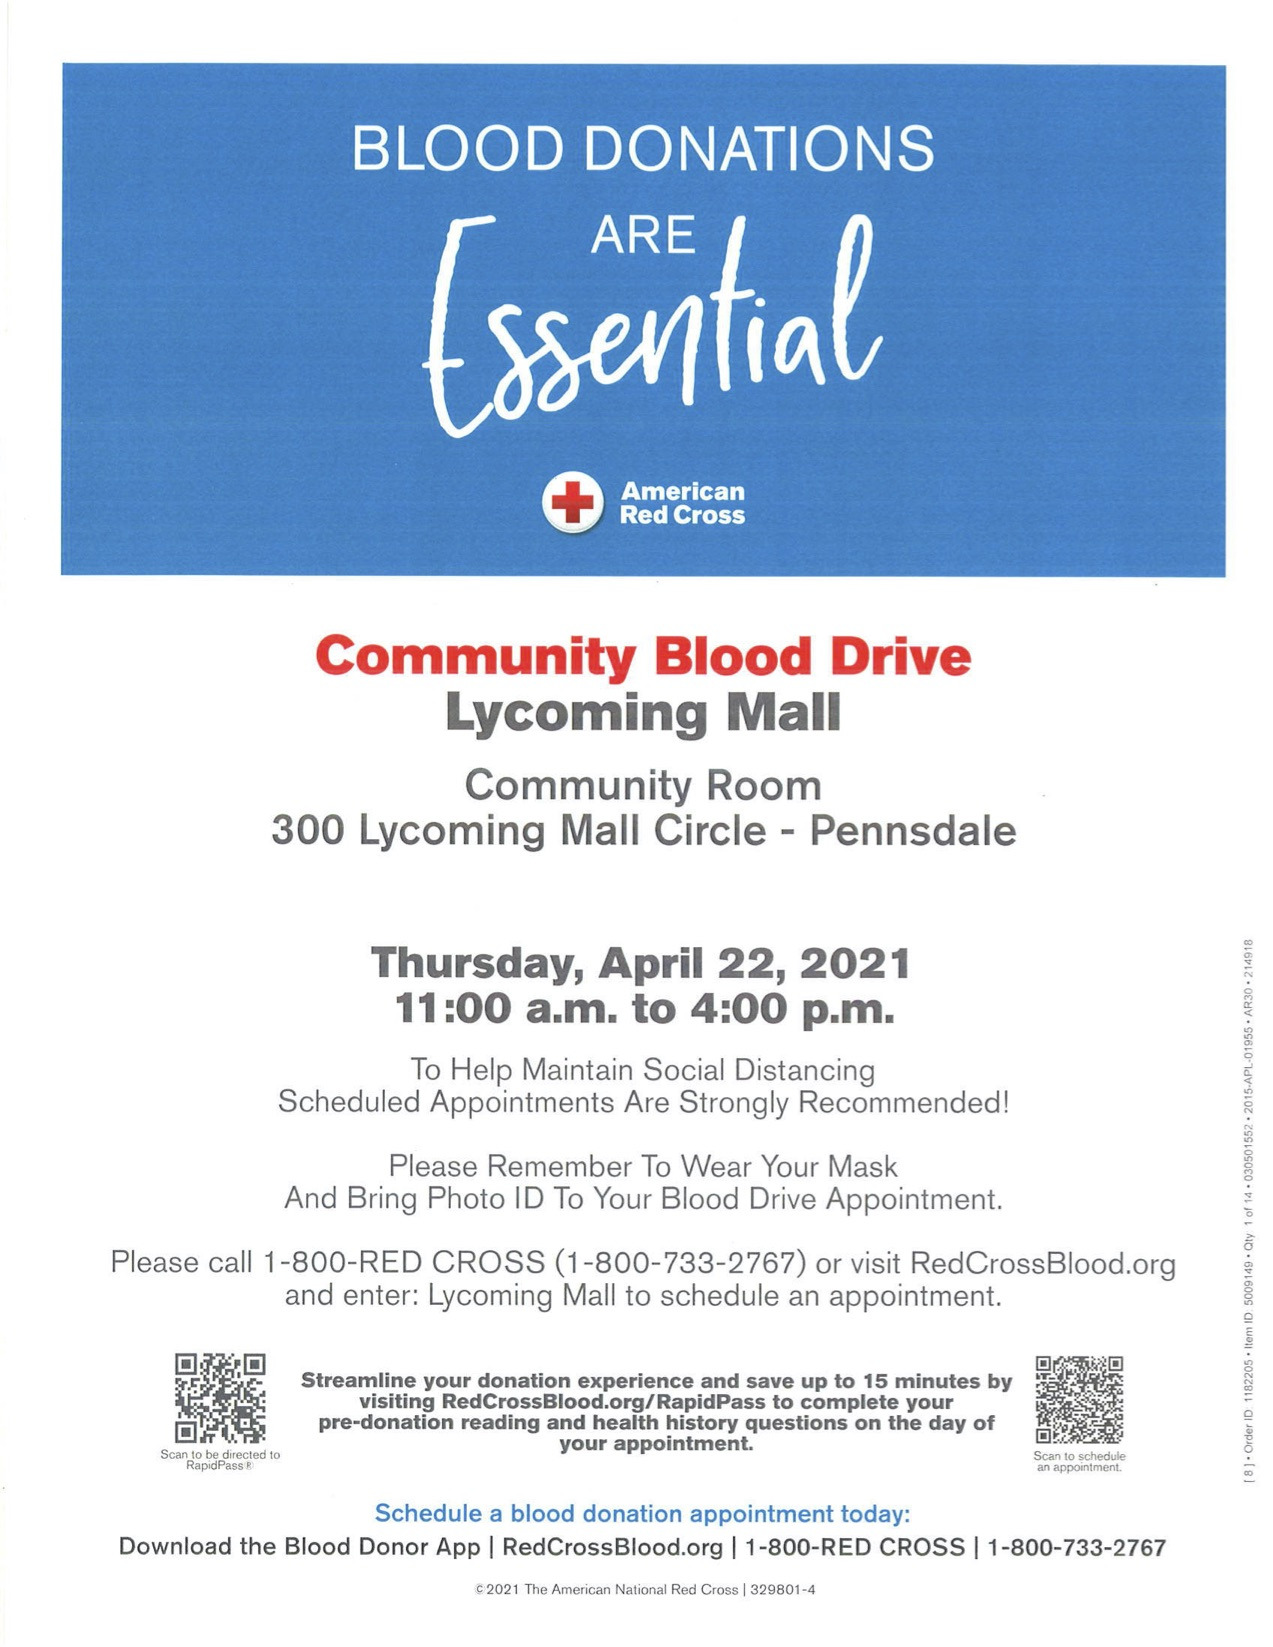 Red cross blood donation information at the the community room of Lycoming Mall. There is a QR code to scan at the bottom of the photo to make an appointment.